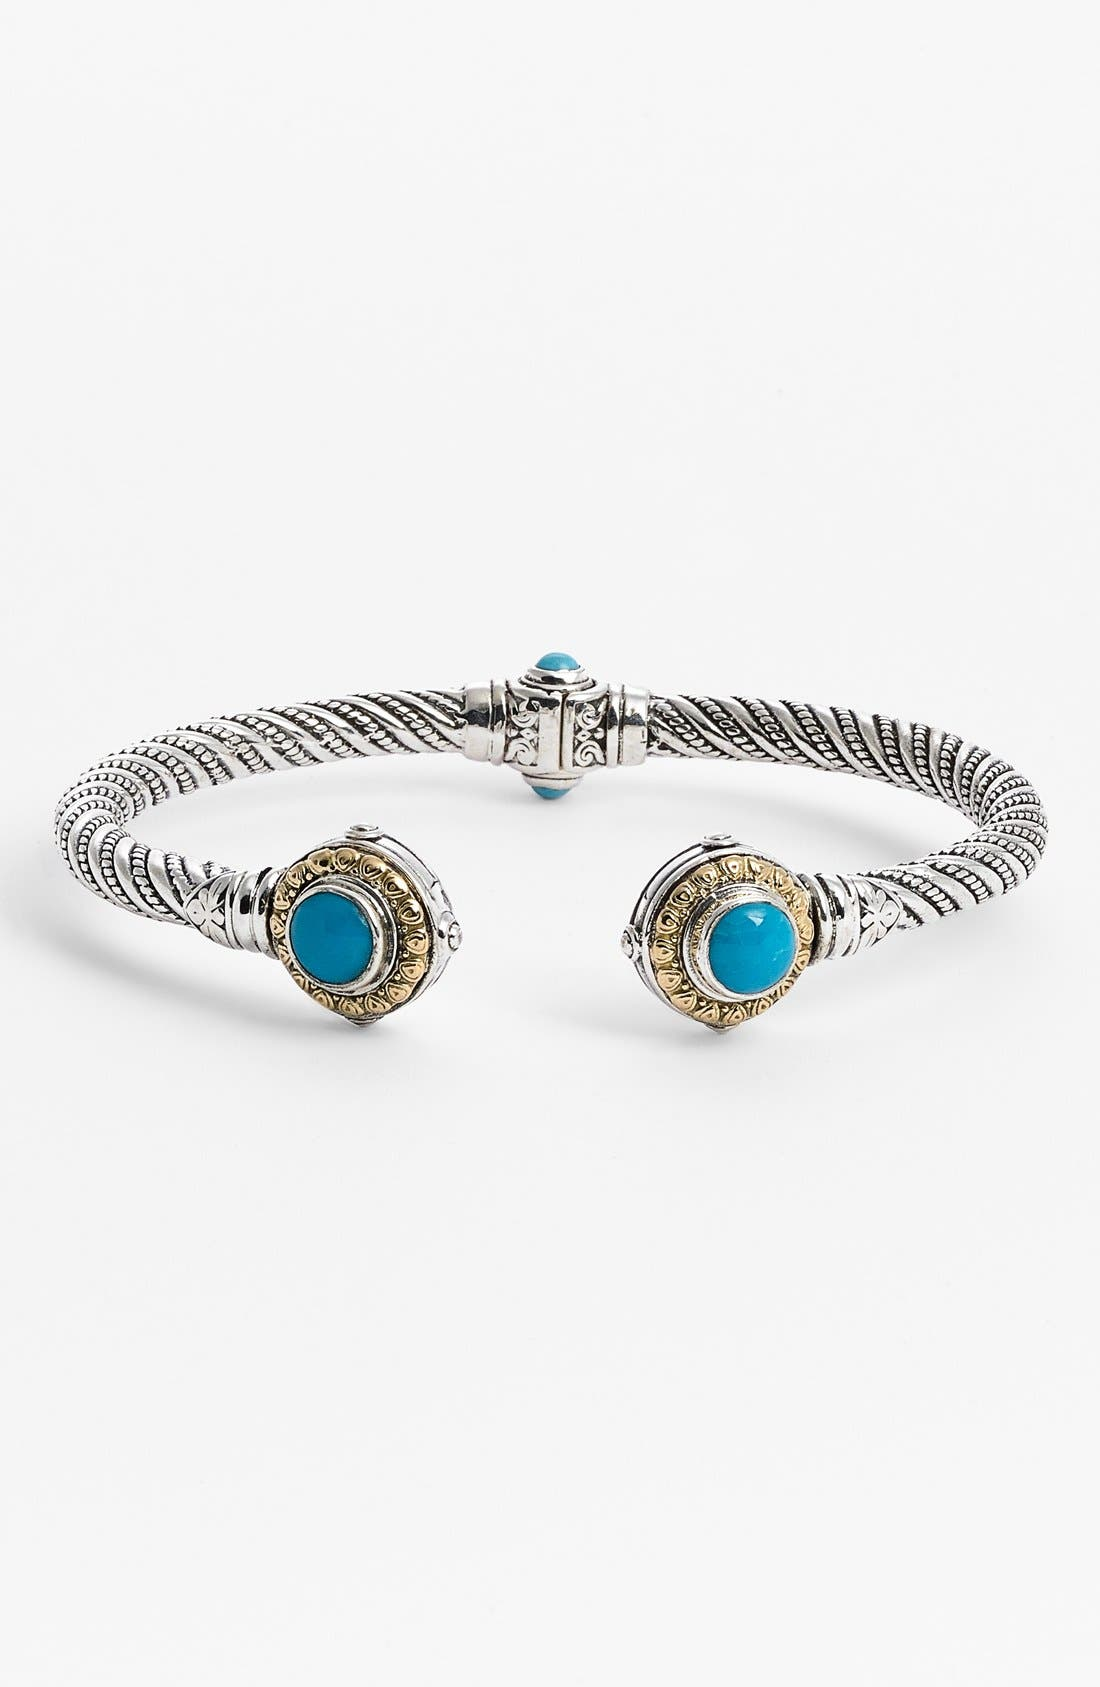 'Hermione' Hinged Cuff,                             Main thumbnail 1, color,                             SILVER/ TURQUOISE